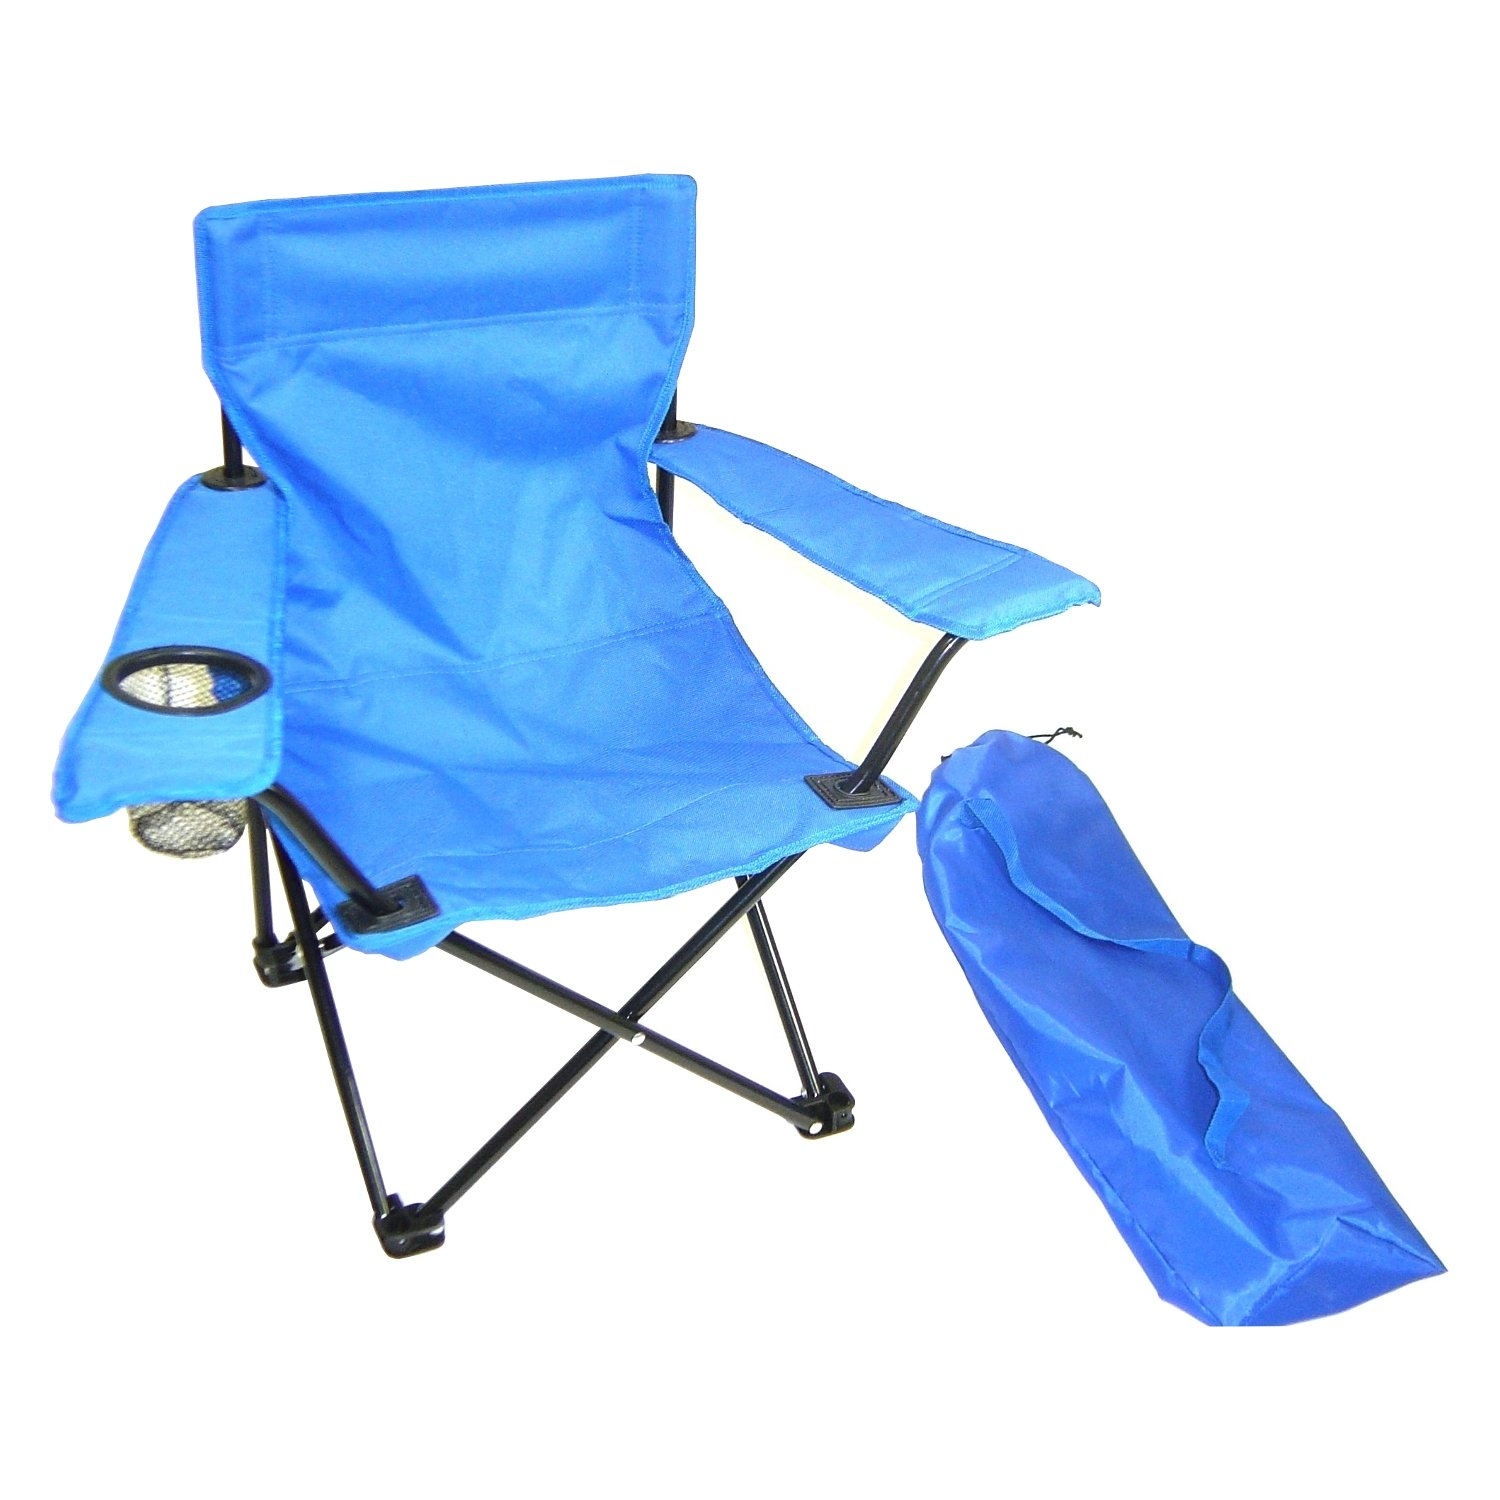 Camping chairs with umbrella - Camping Chairs With Umbrella 32